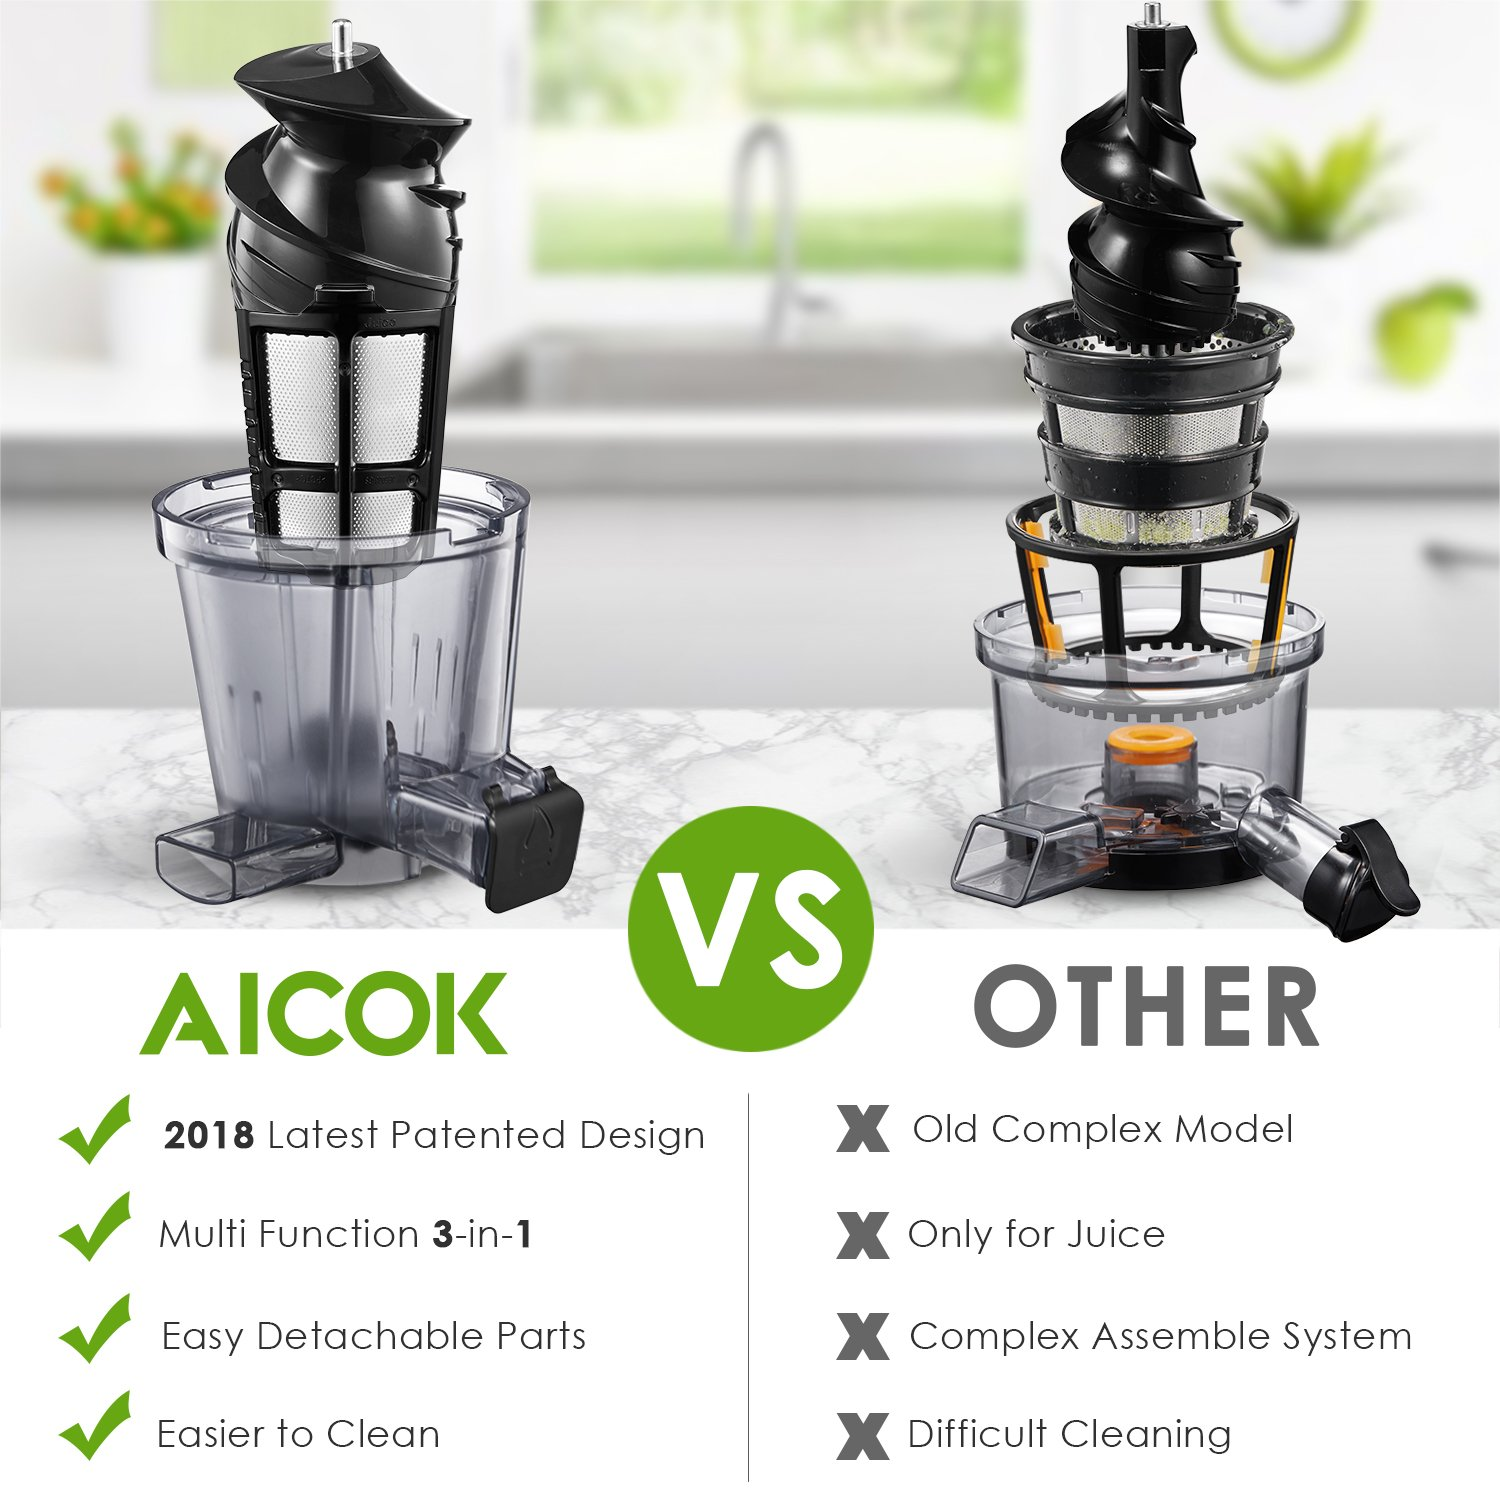 Aicok Juicer Auger Slow Masticating Juicer for Smooth and High Nutrition Juicer,Vertical Faster Masticating Juicer Includes - Making Juice,Jam and Sorbet,Quiet Juicer Extractor,Silver by AICOK (Image #3)